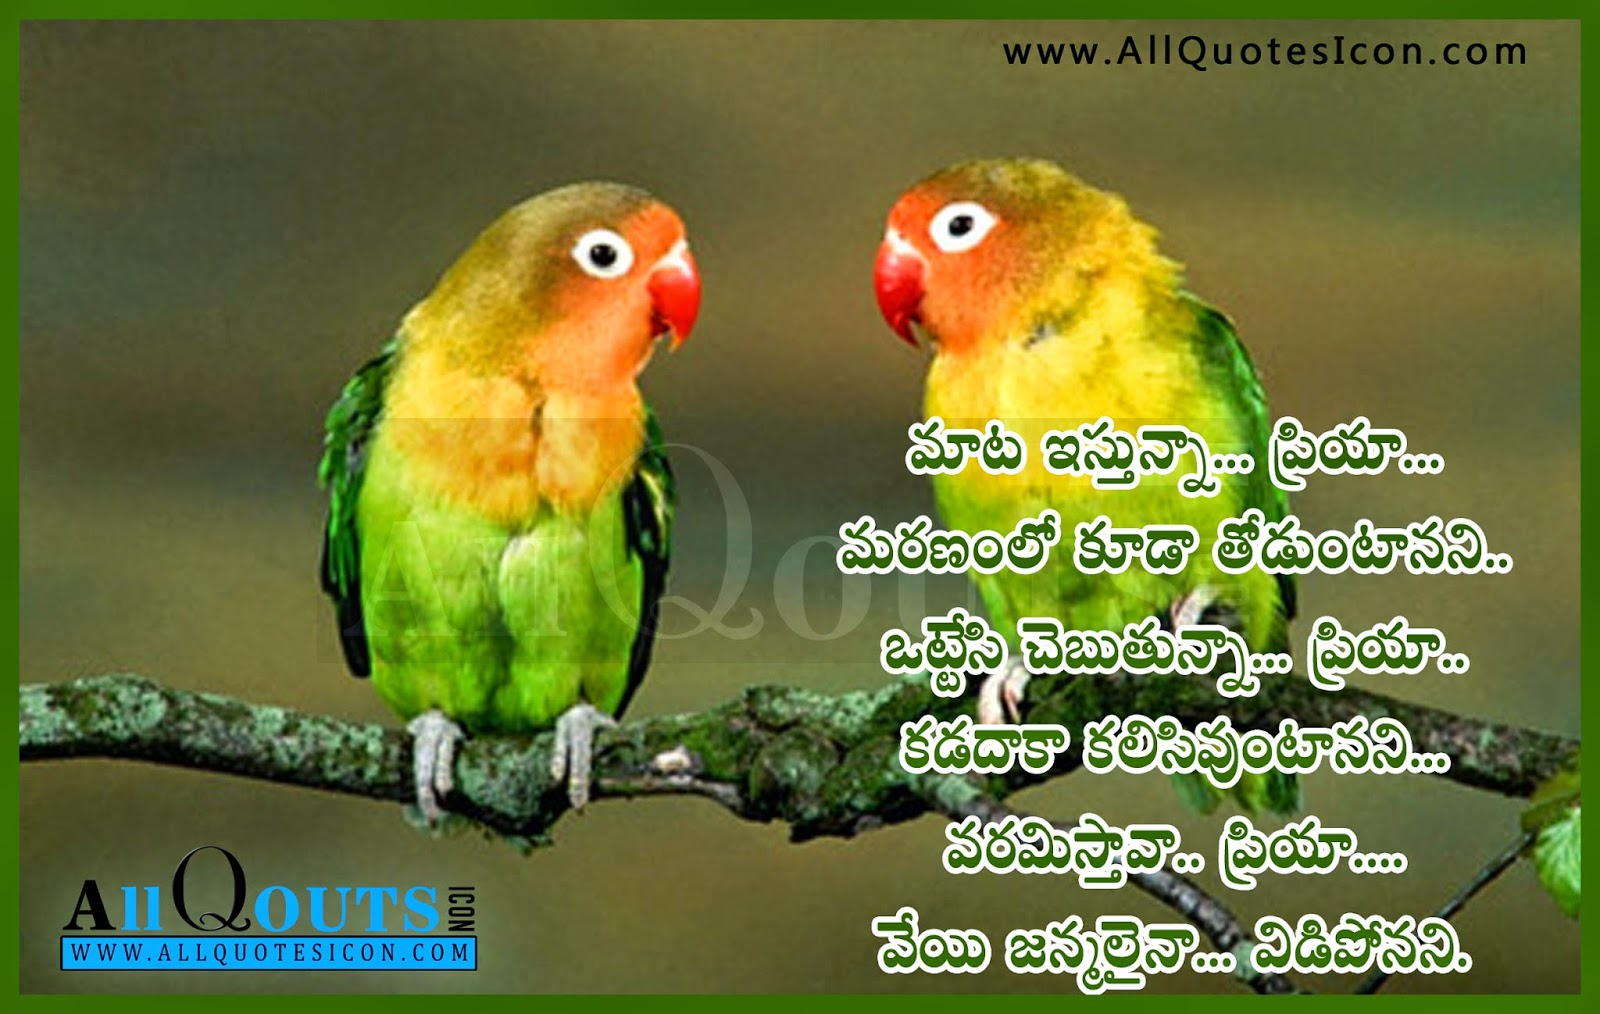 Telugu Love Quotes Awesome Telugu Love Quotes And Images  Www.allquotesicon  Telugu